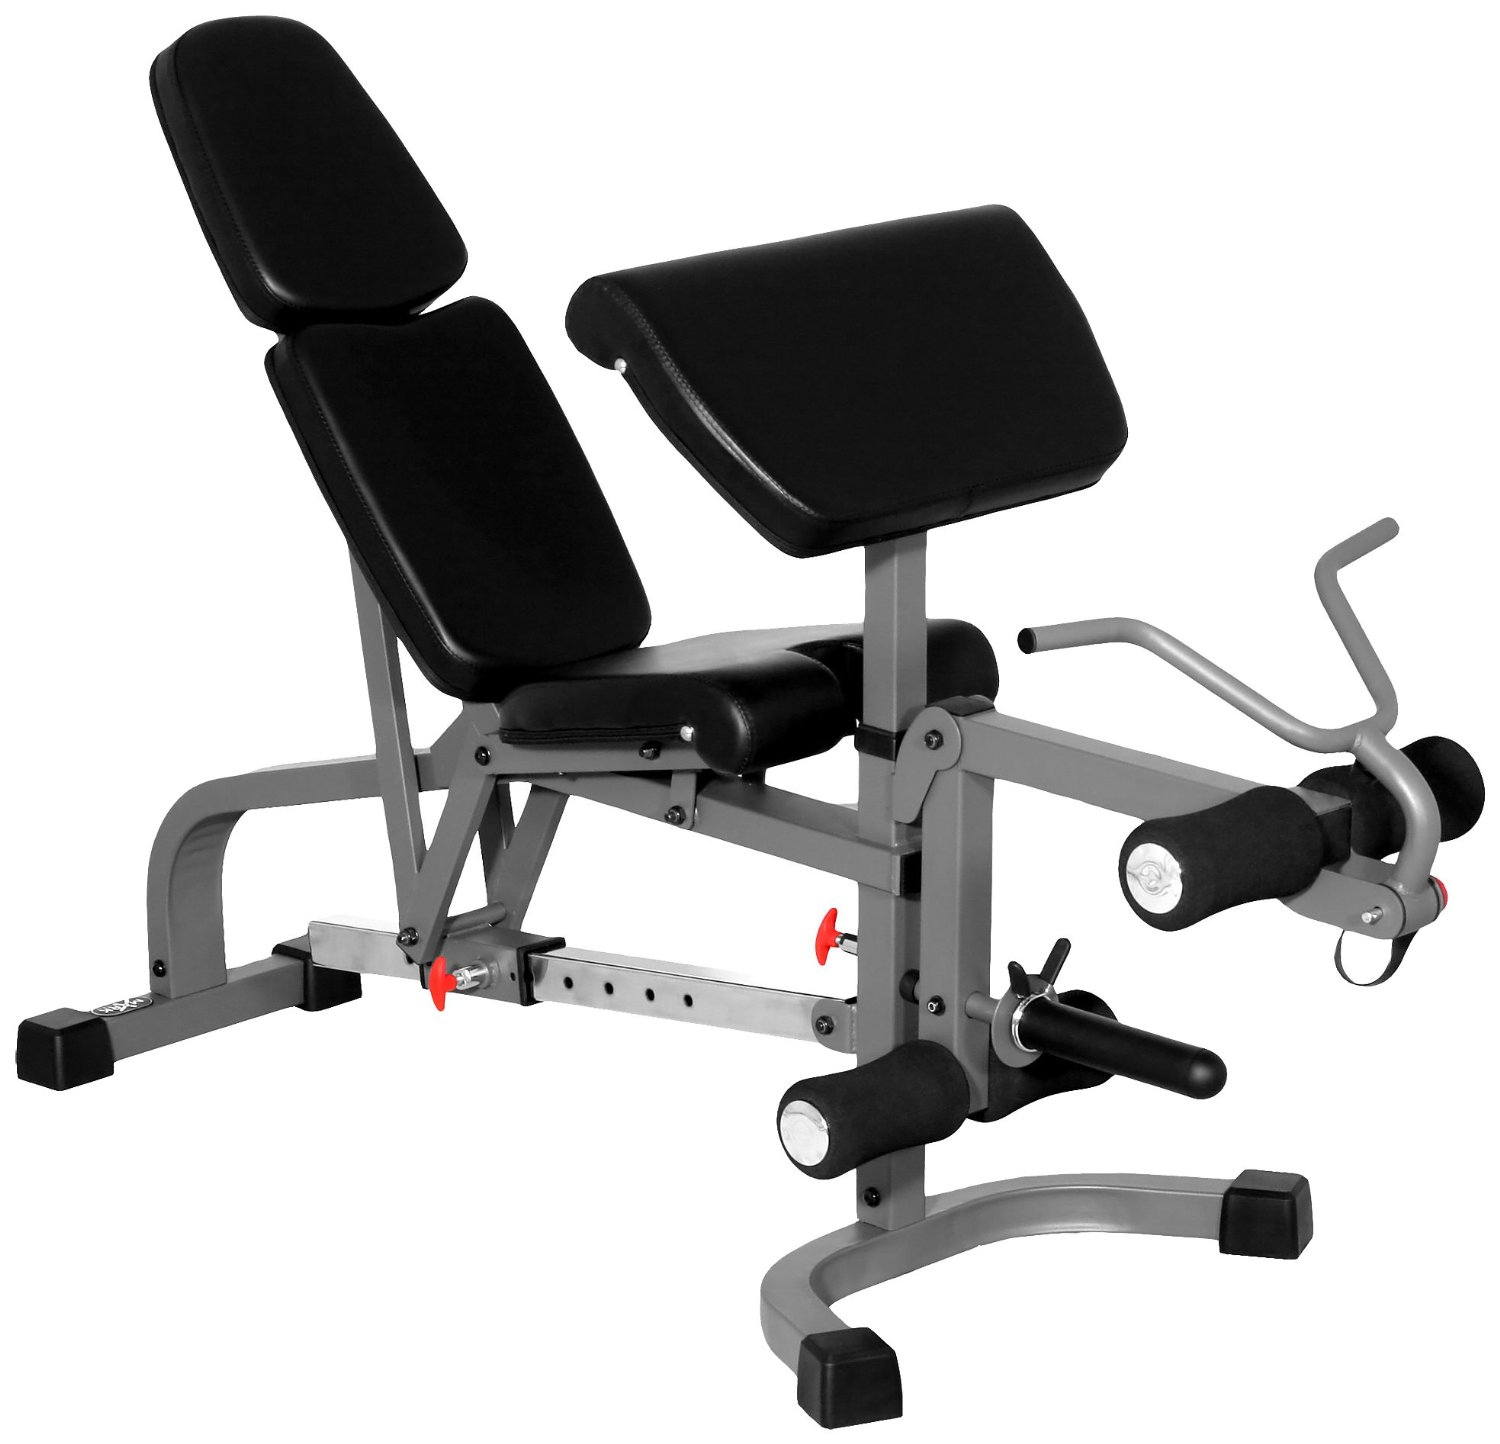 strength hammerstrength power weight pulldown flat benches sale find hammer and price rack bench review cheap dimensions half parabody olympic racks deals squat press life l on attachments lat for fitness